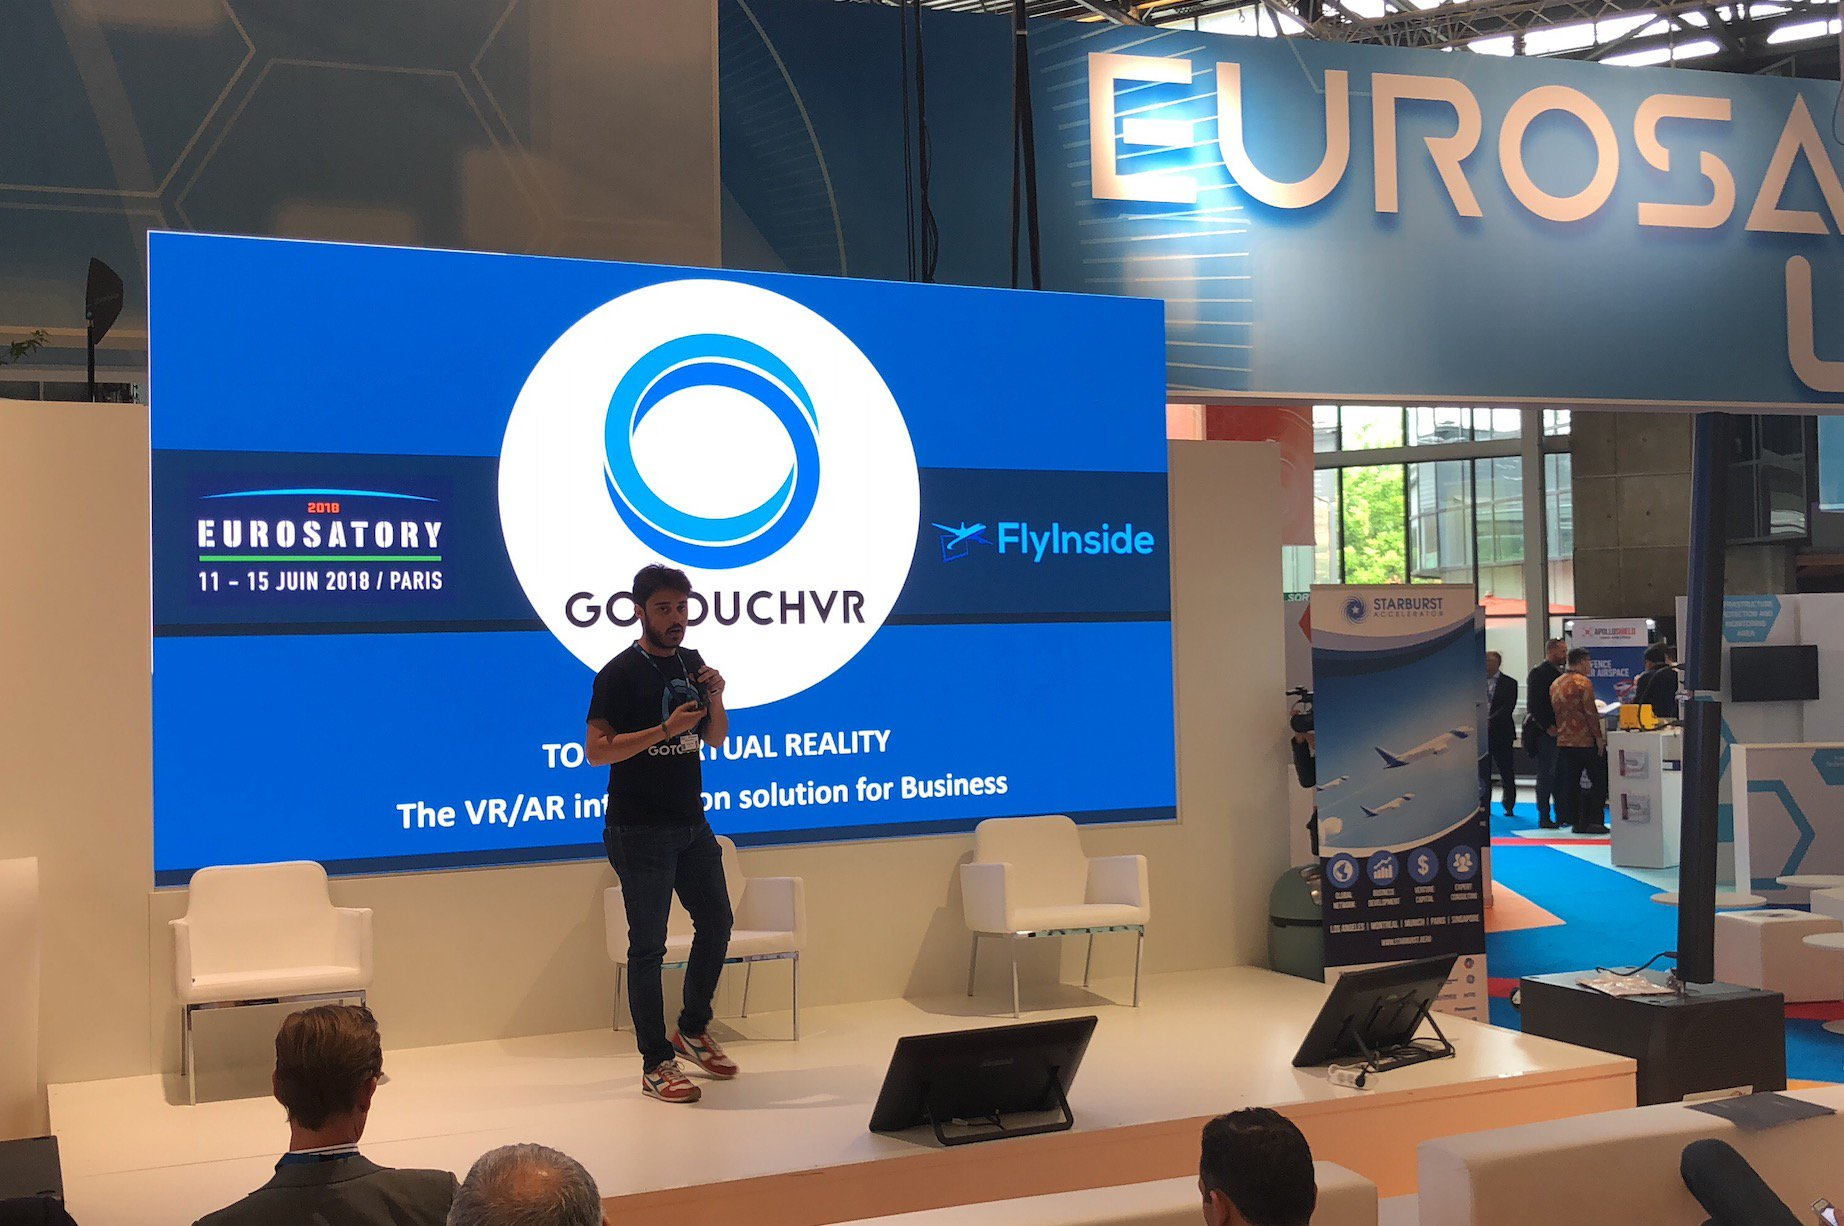 Our pre-sales engineer @lelesaby talking about our recent collaboration with @FlyInsideFSX to develop a flight simulator in #VR. Our technology based on #haptics made it real, easy to learn, and effective. #Eurosatory2018 https://t.co/RC4bCGqouS